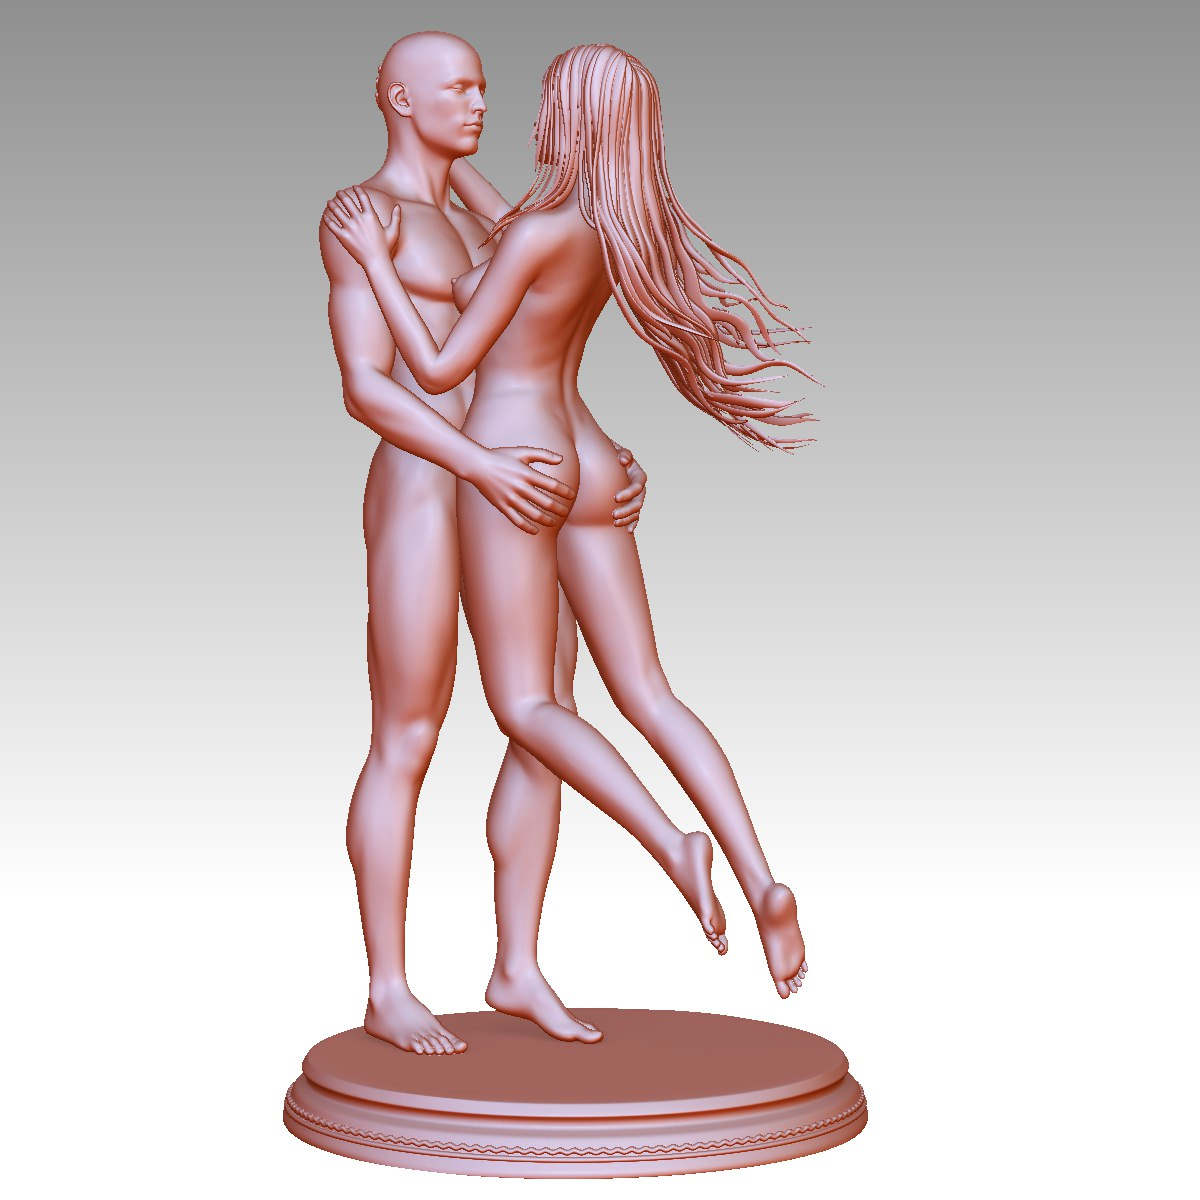 3D Printable Nude Couple 3D Model 3D printable stl